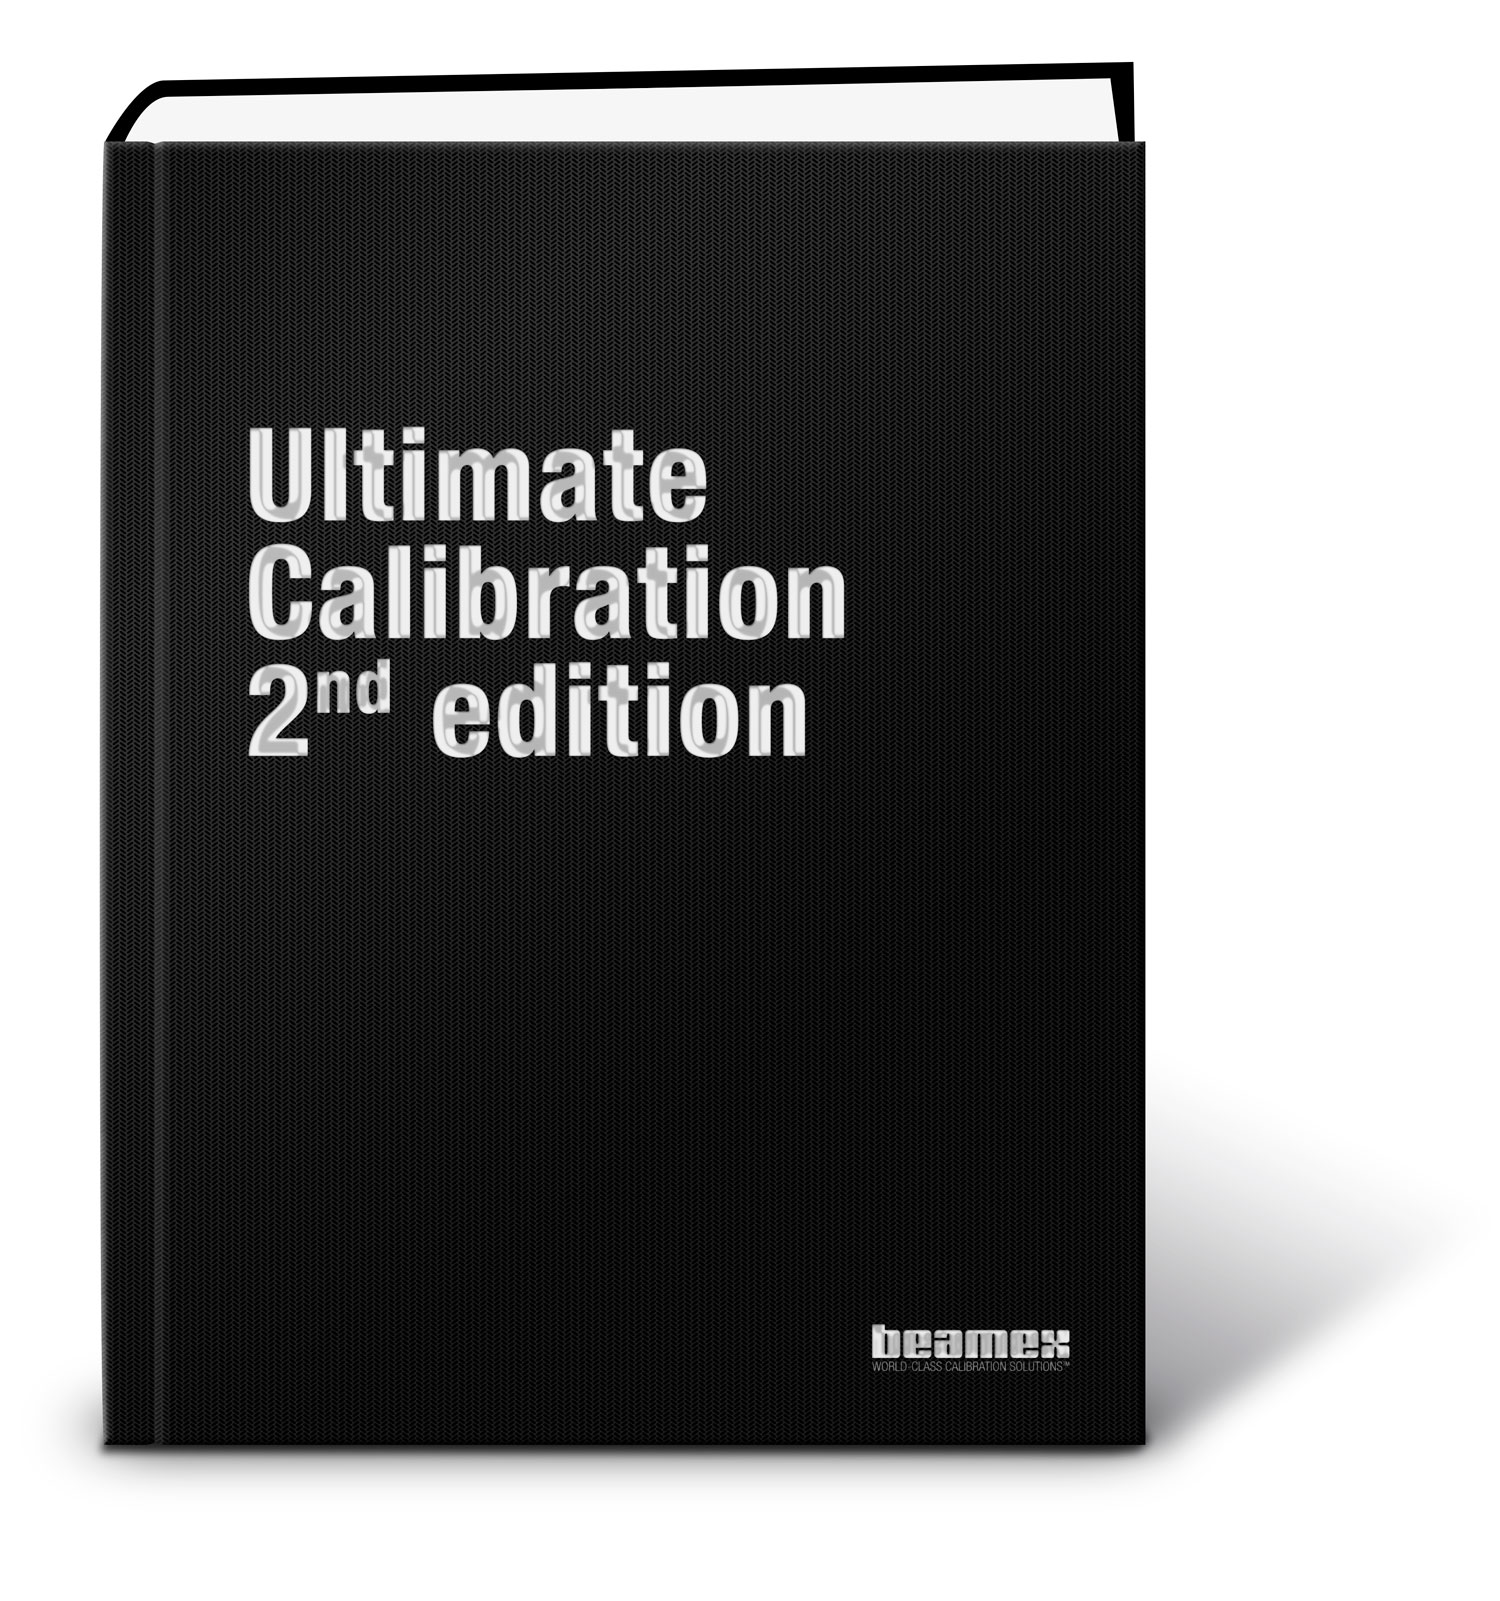 Ultimate Calibration ebook by Beamex